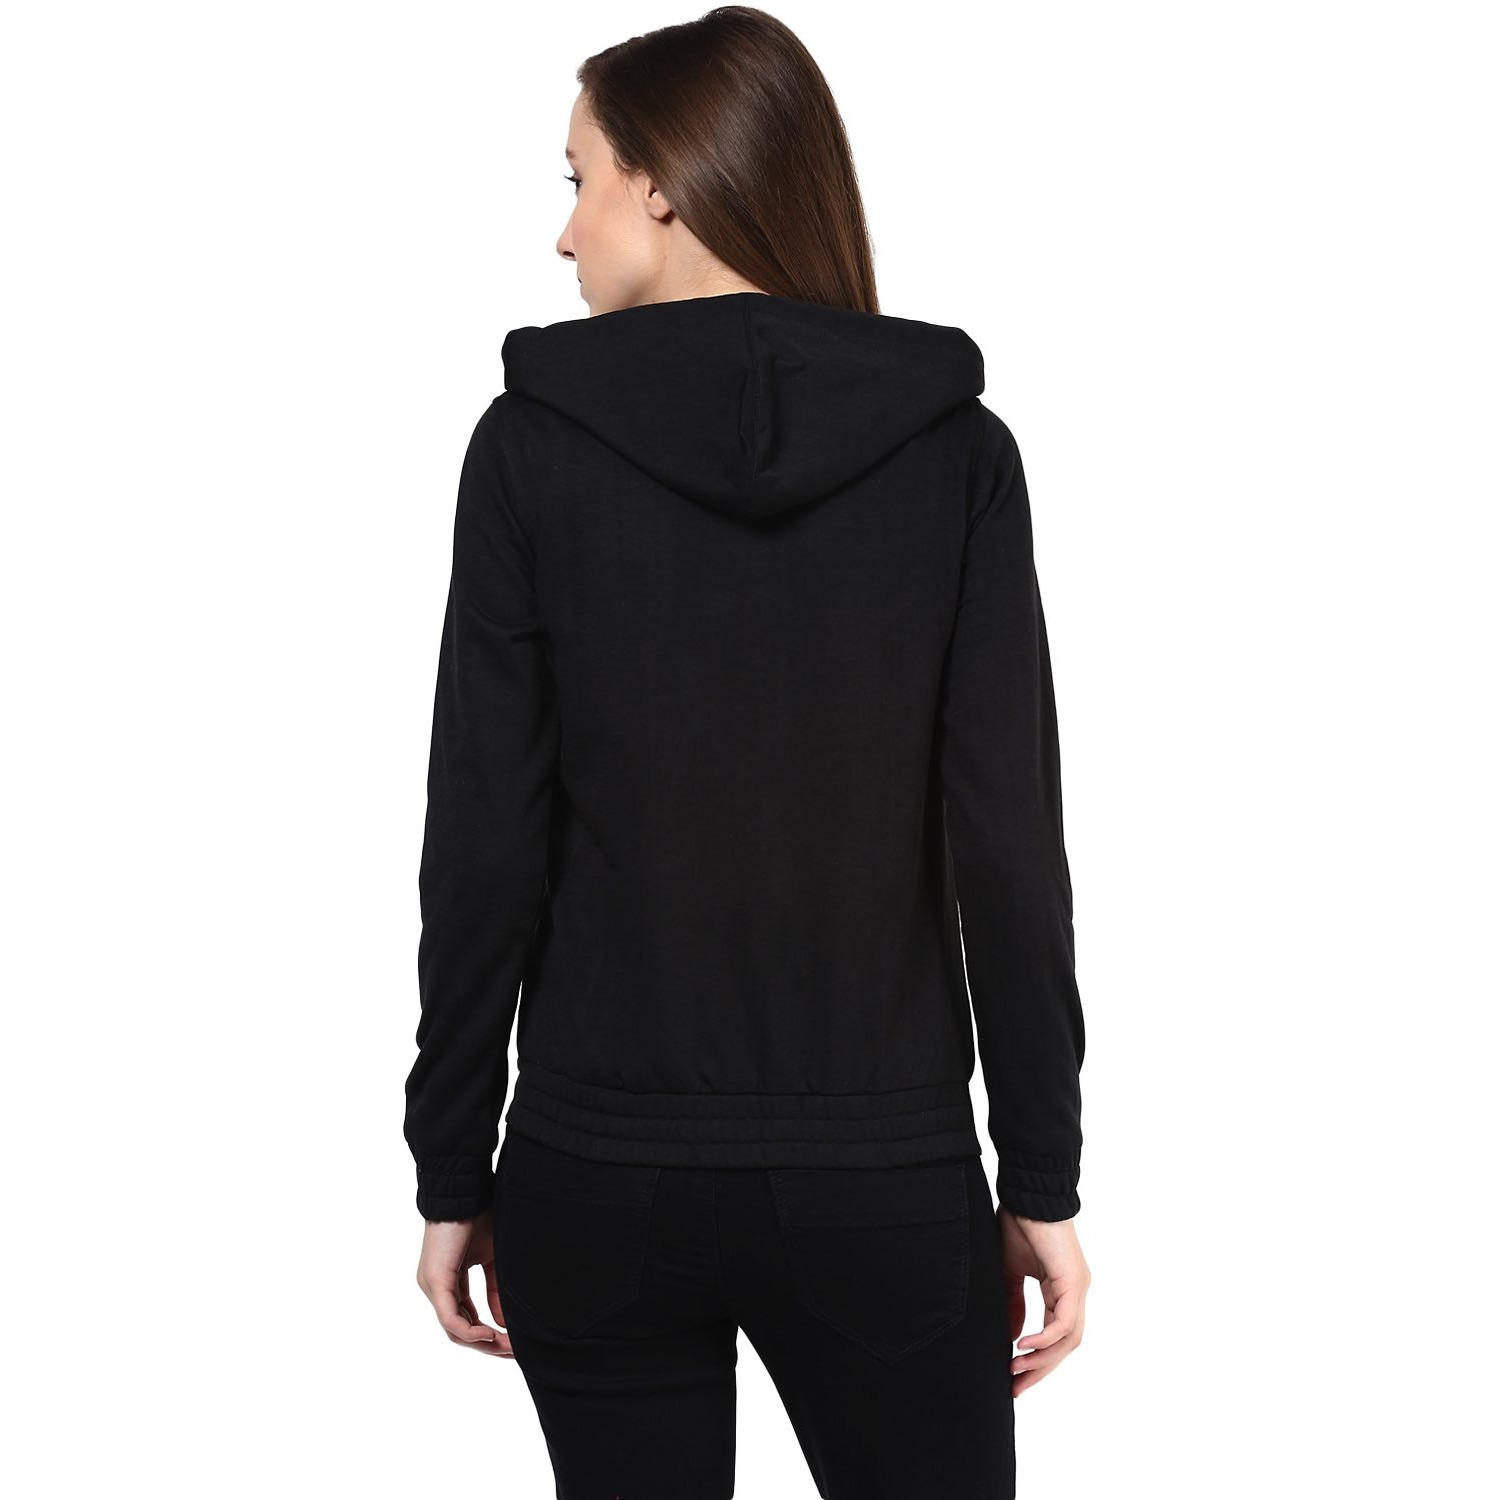 Hooded Sweatshirt In Black Color With Distressed Print (Size:M)